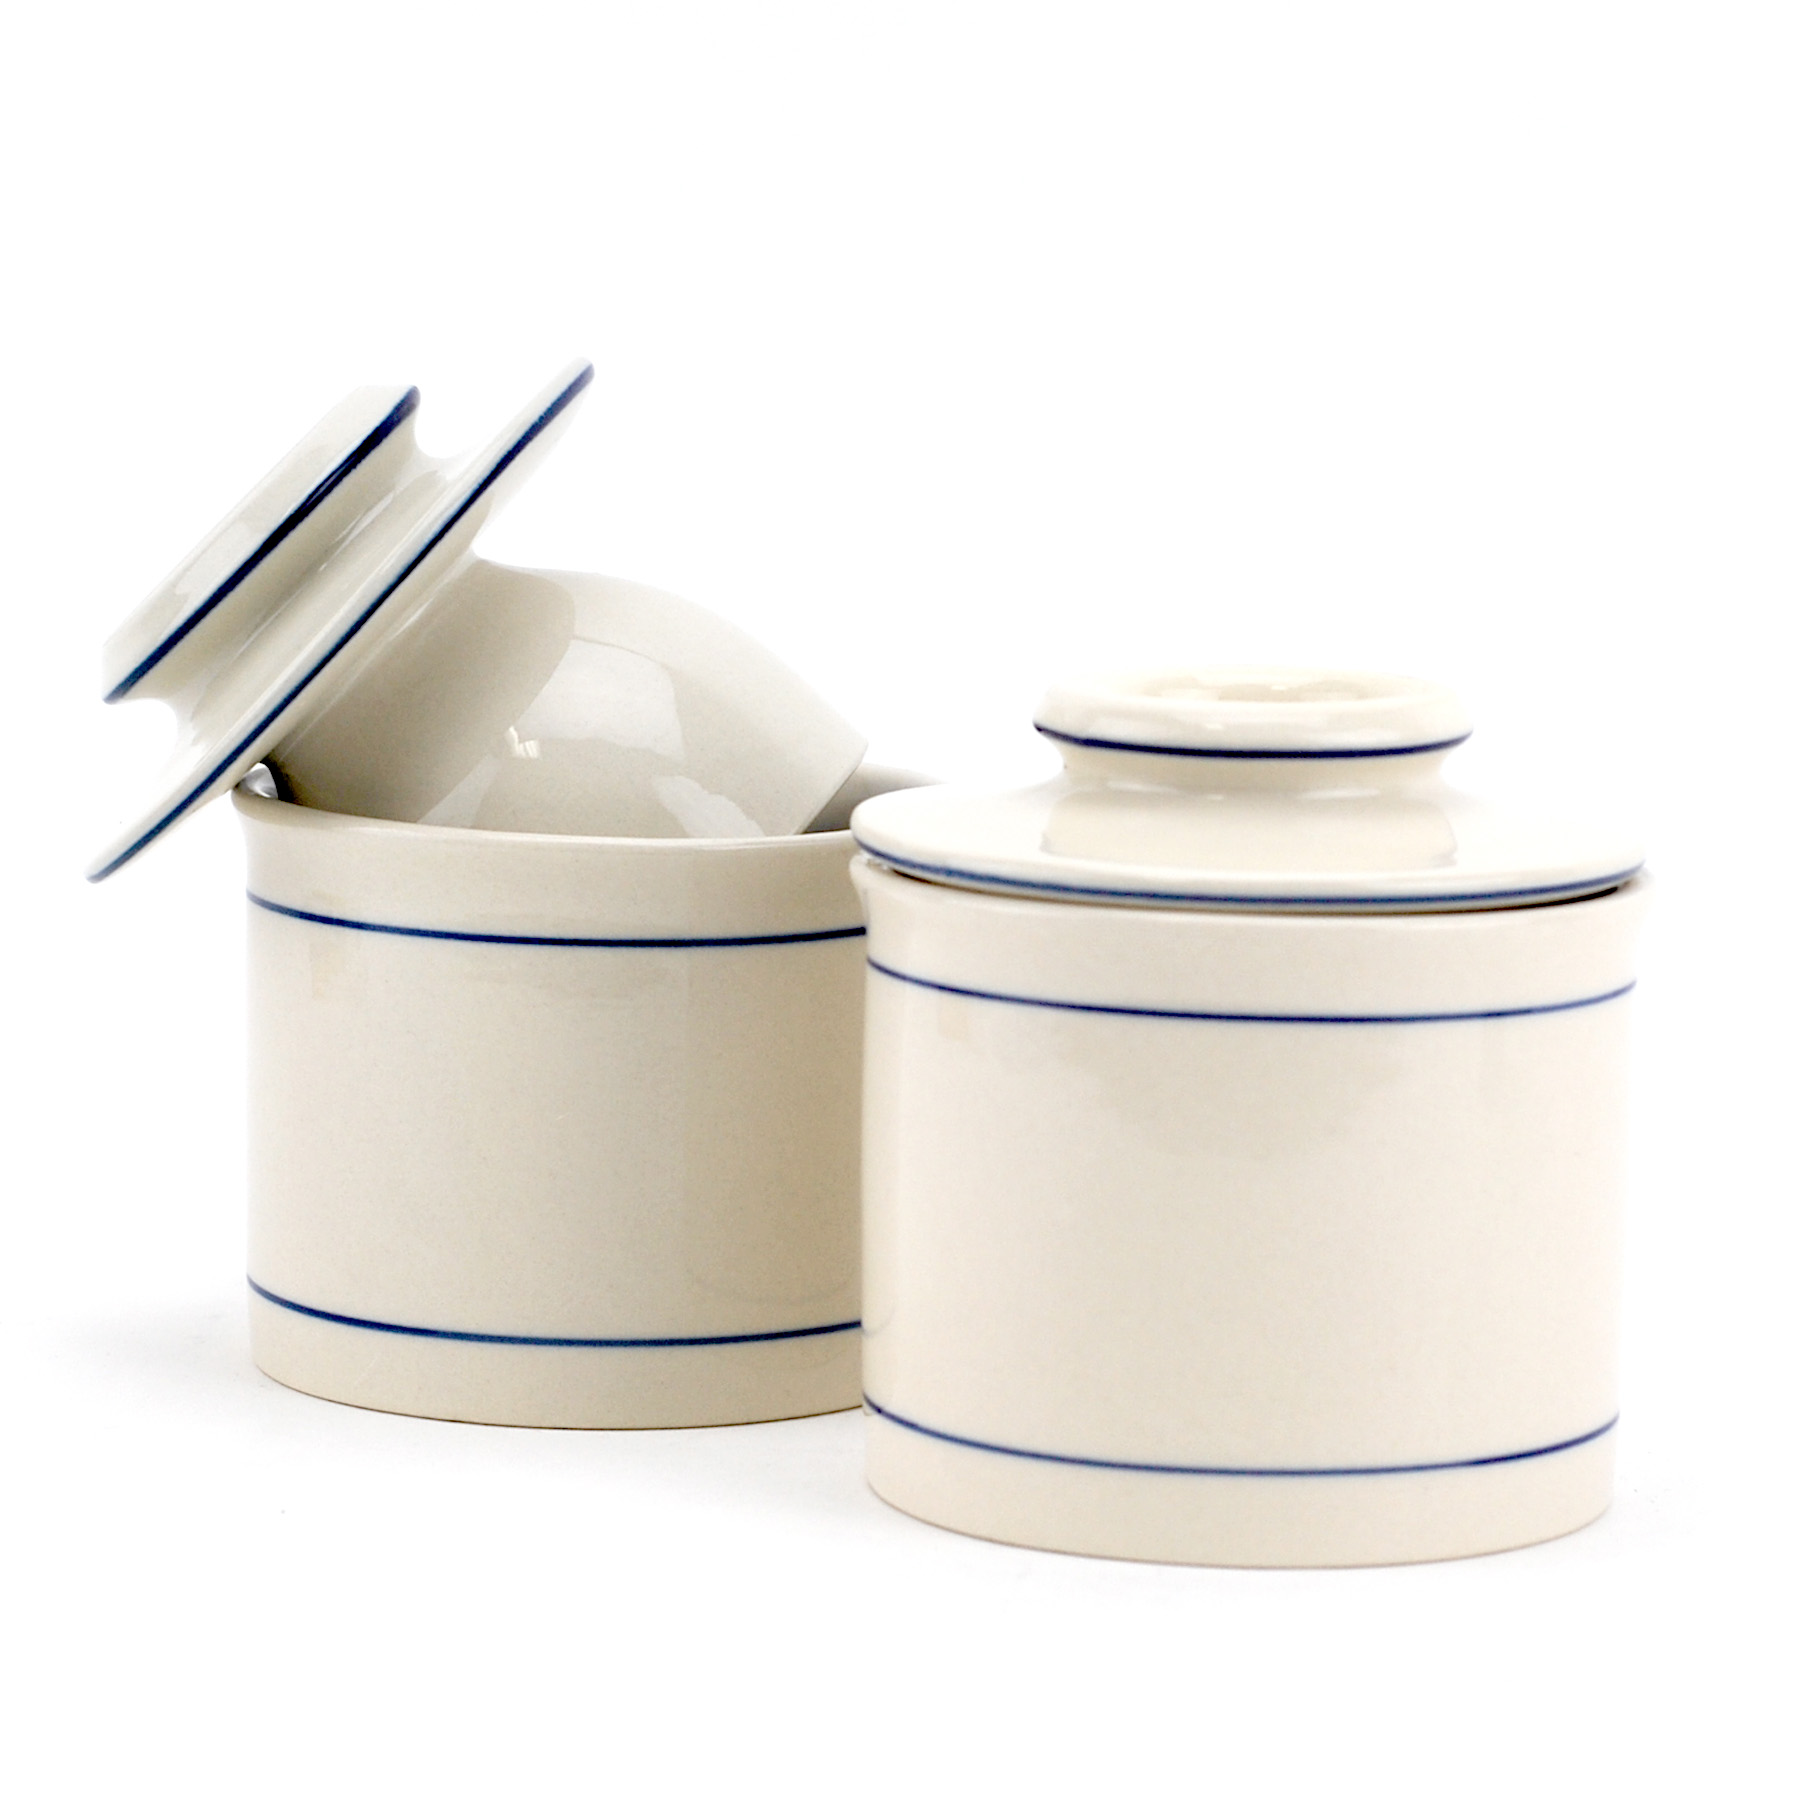 4faac792caeb Lock And Lock Butter Keeper, French Porcelain Butter Keeper Dish (pack Of 2)